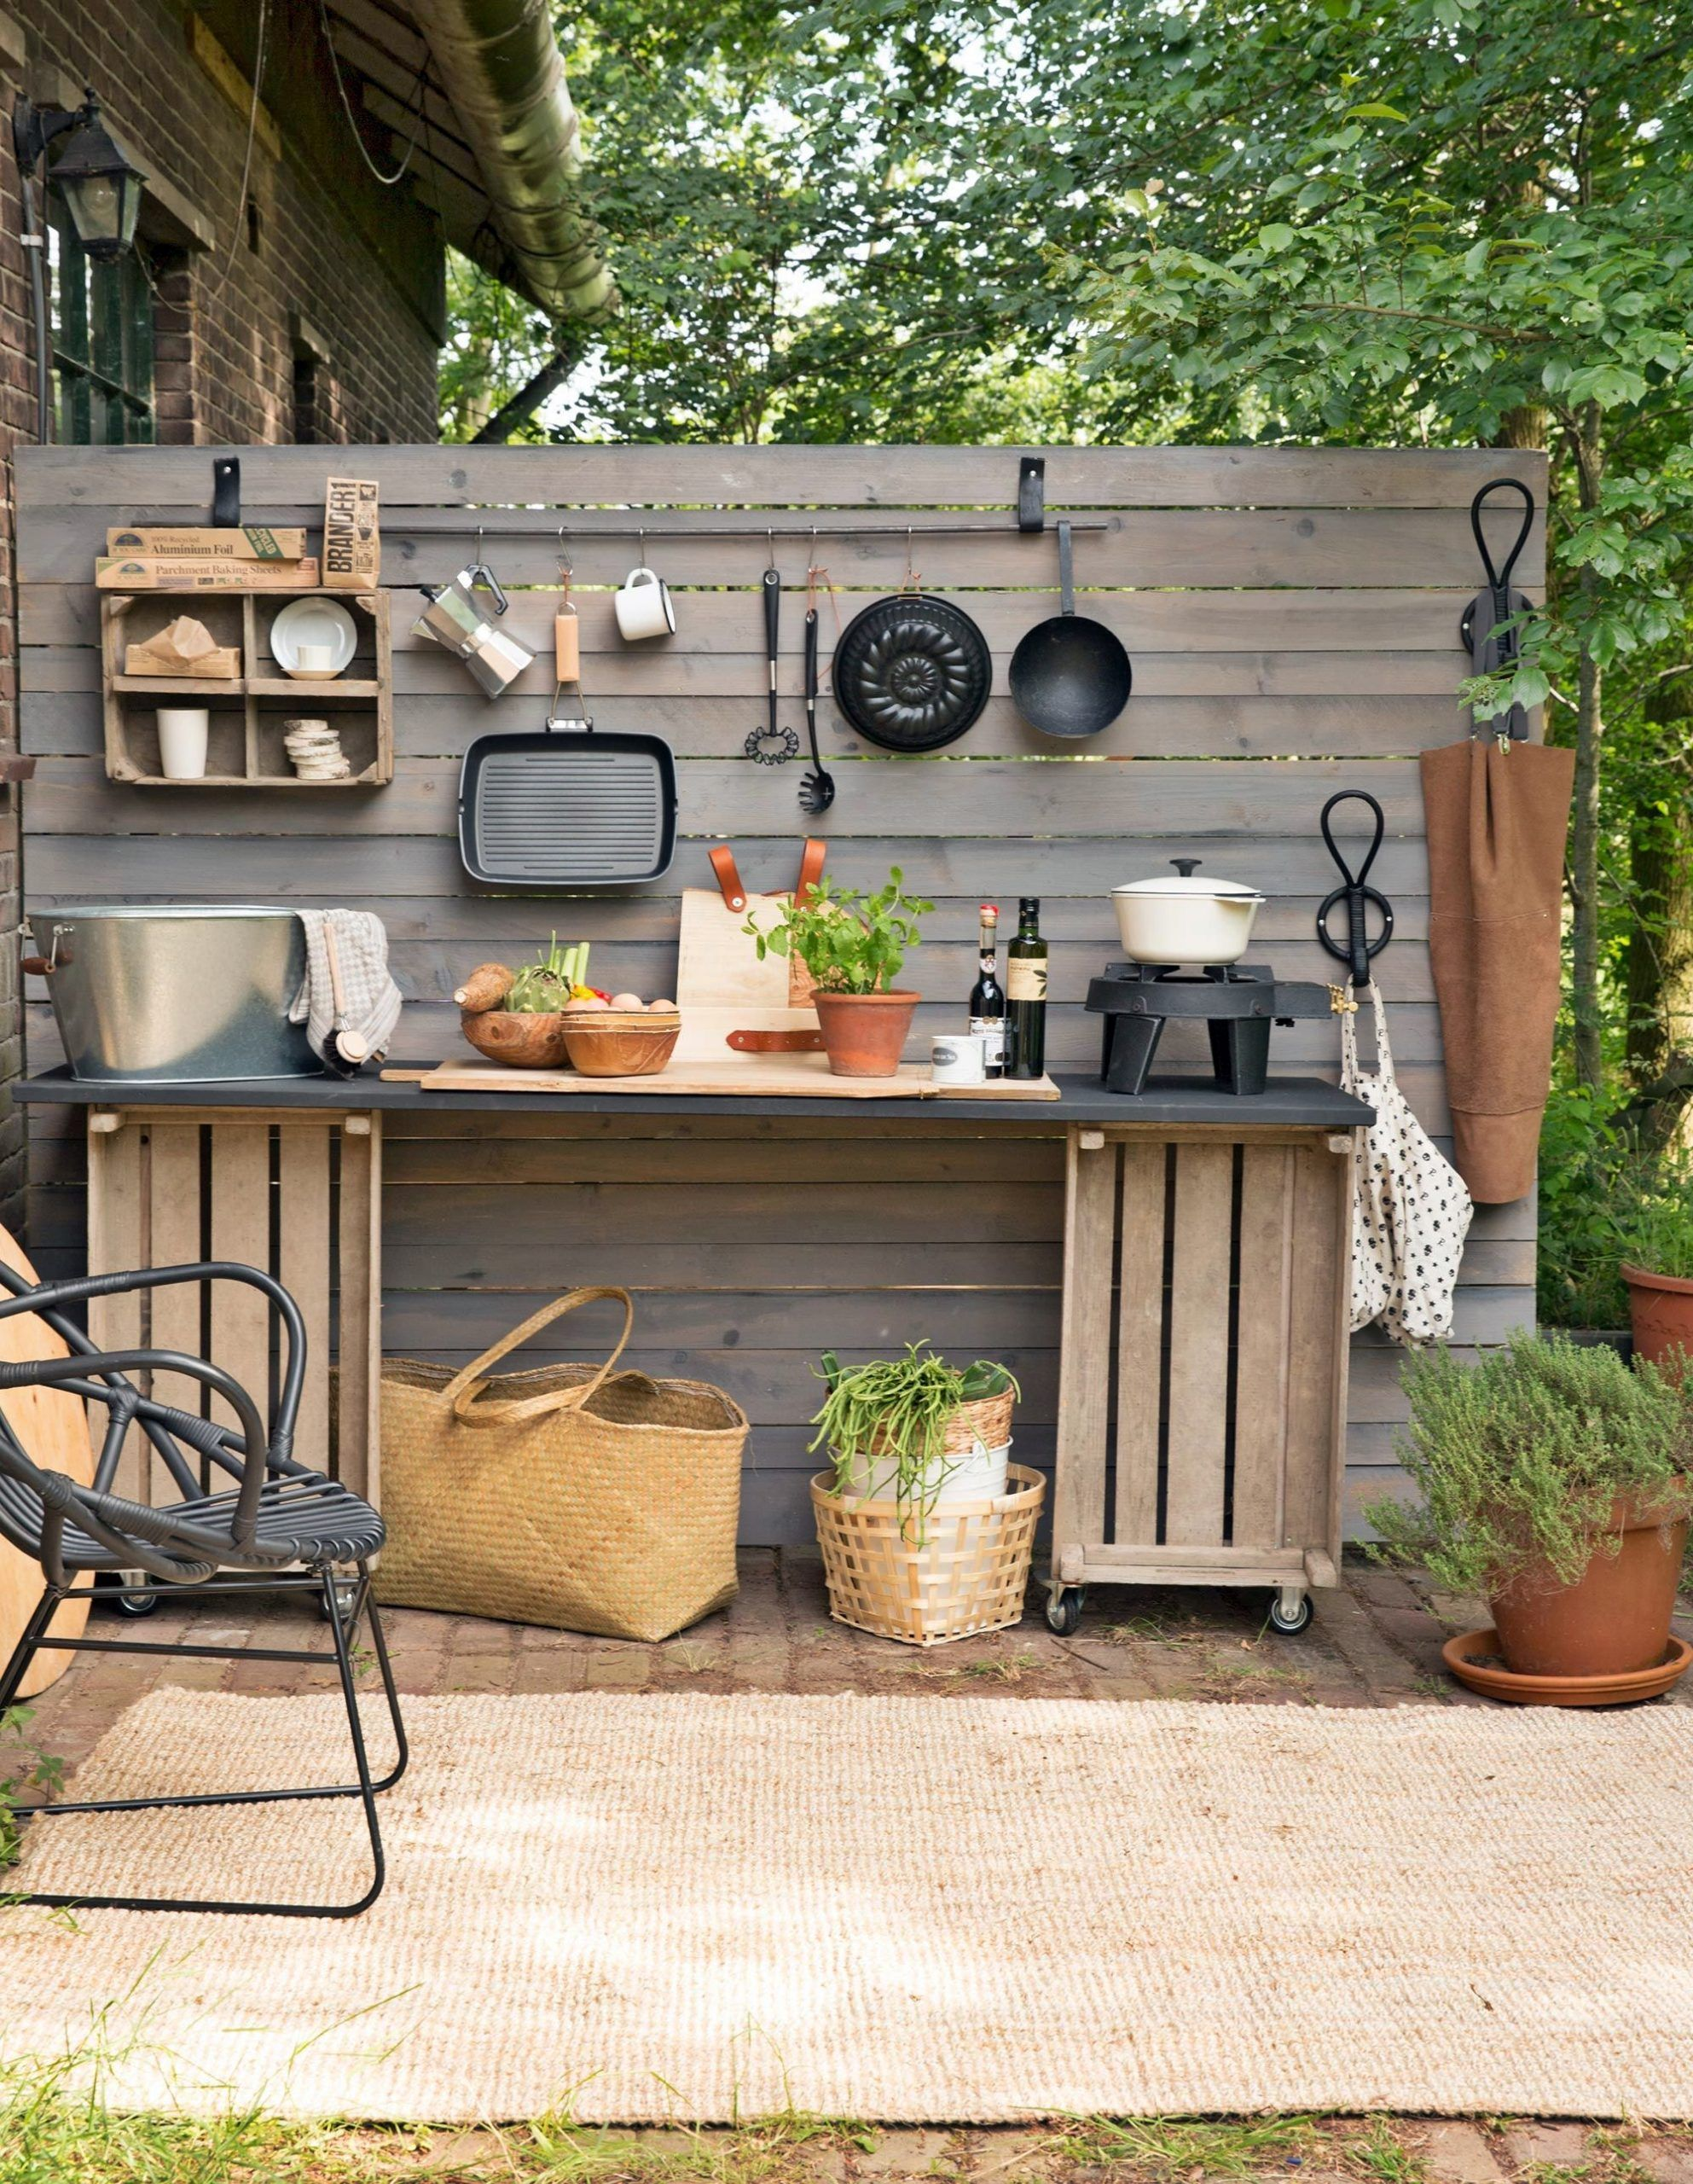 20 Simple Spring Outdoor Kitchen Organization Hacks That Are Popular Nowaday Small Outdoor Kitchens Simple Outdoor Kitchen Diy Outdoor Kitchen